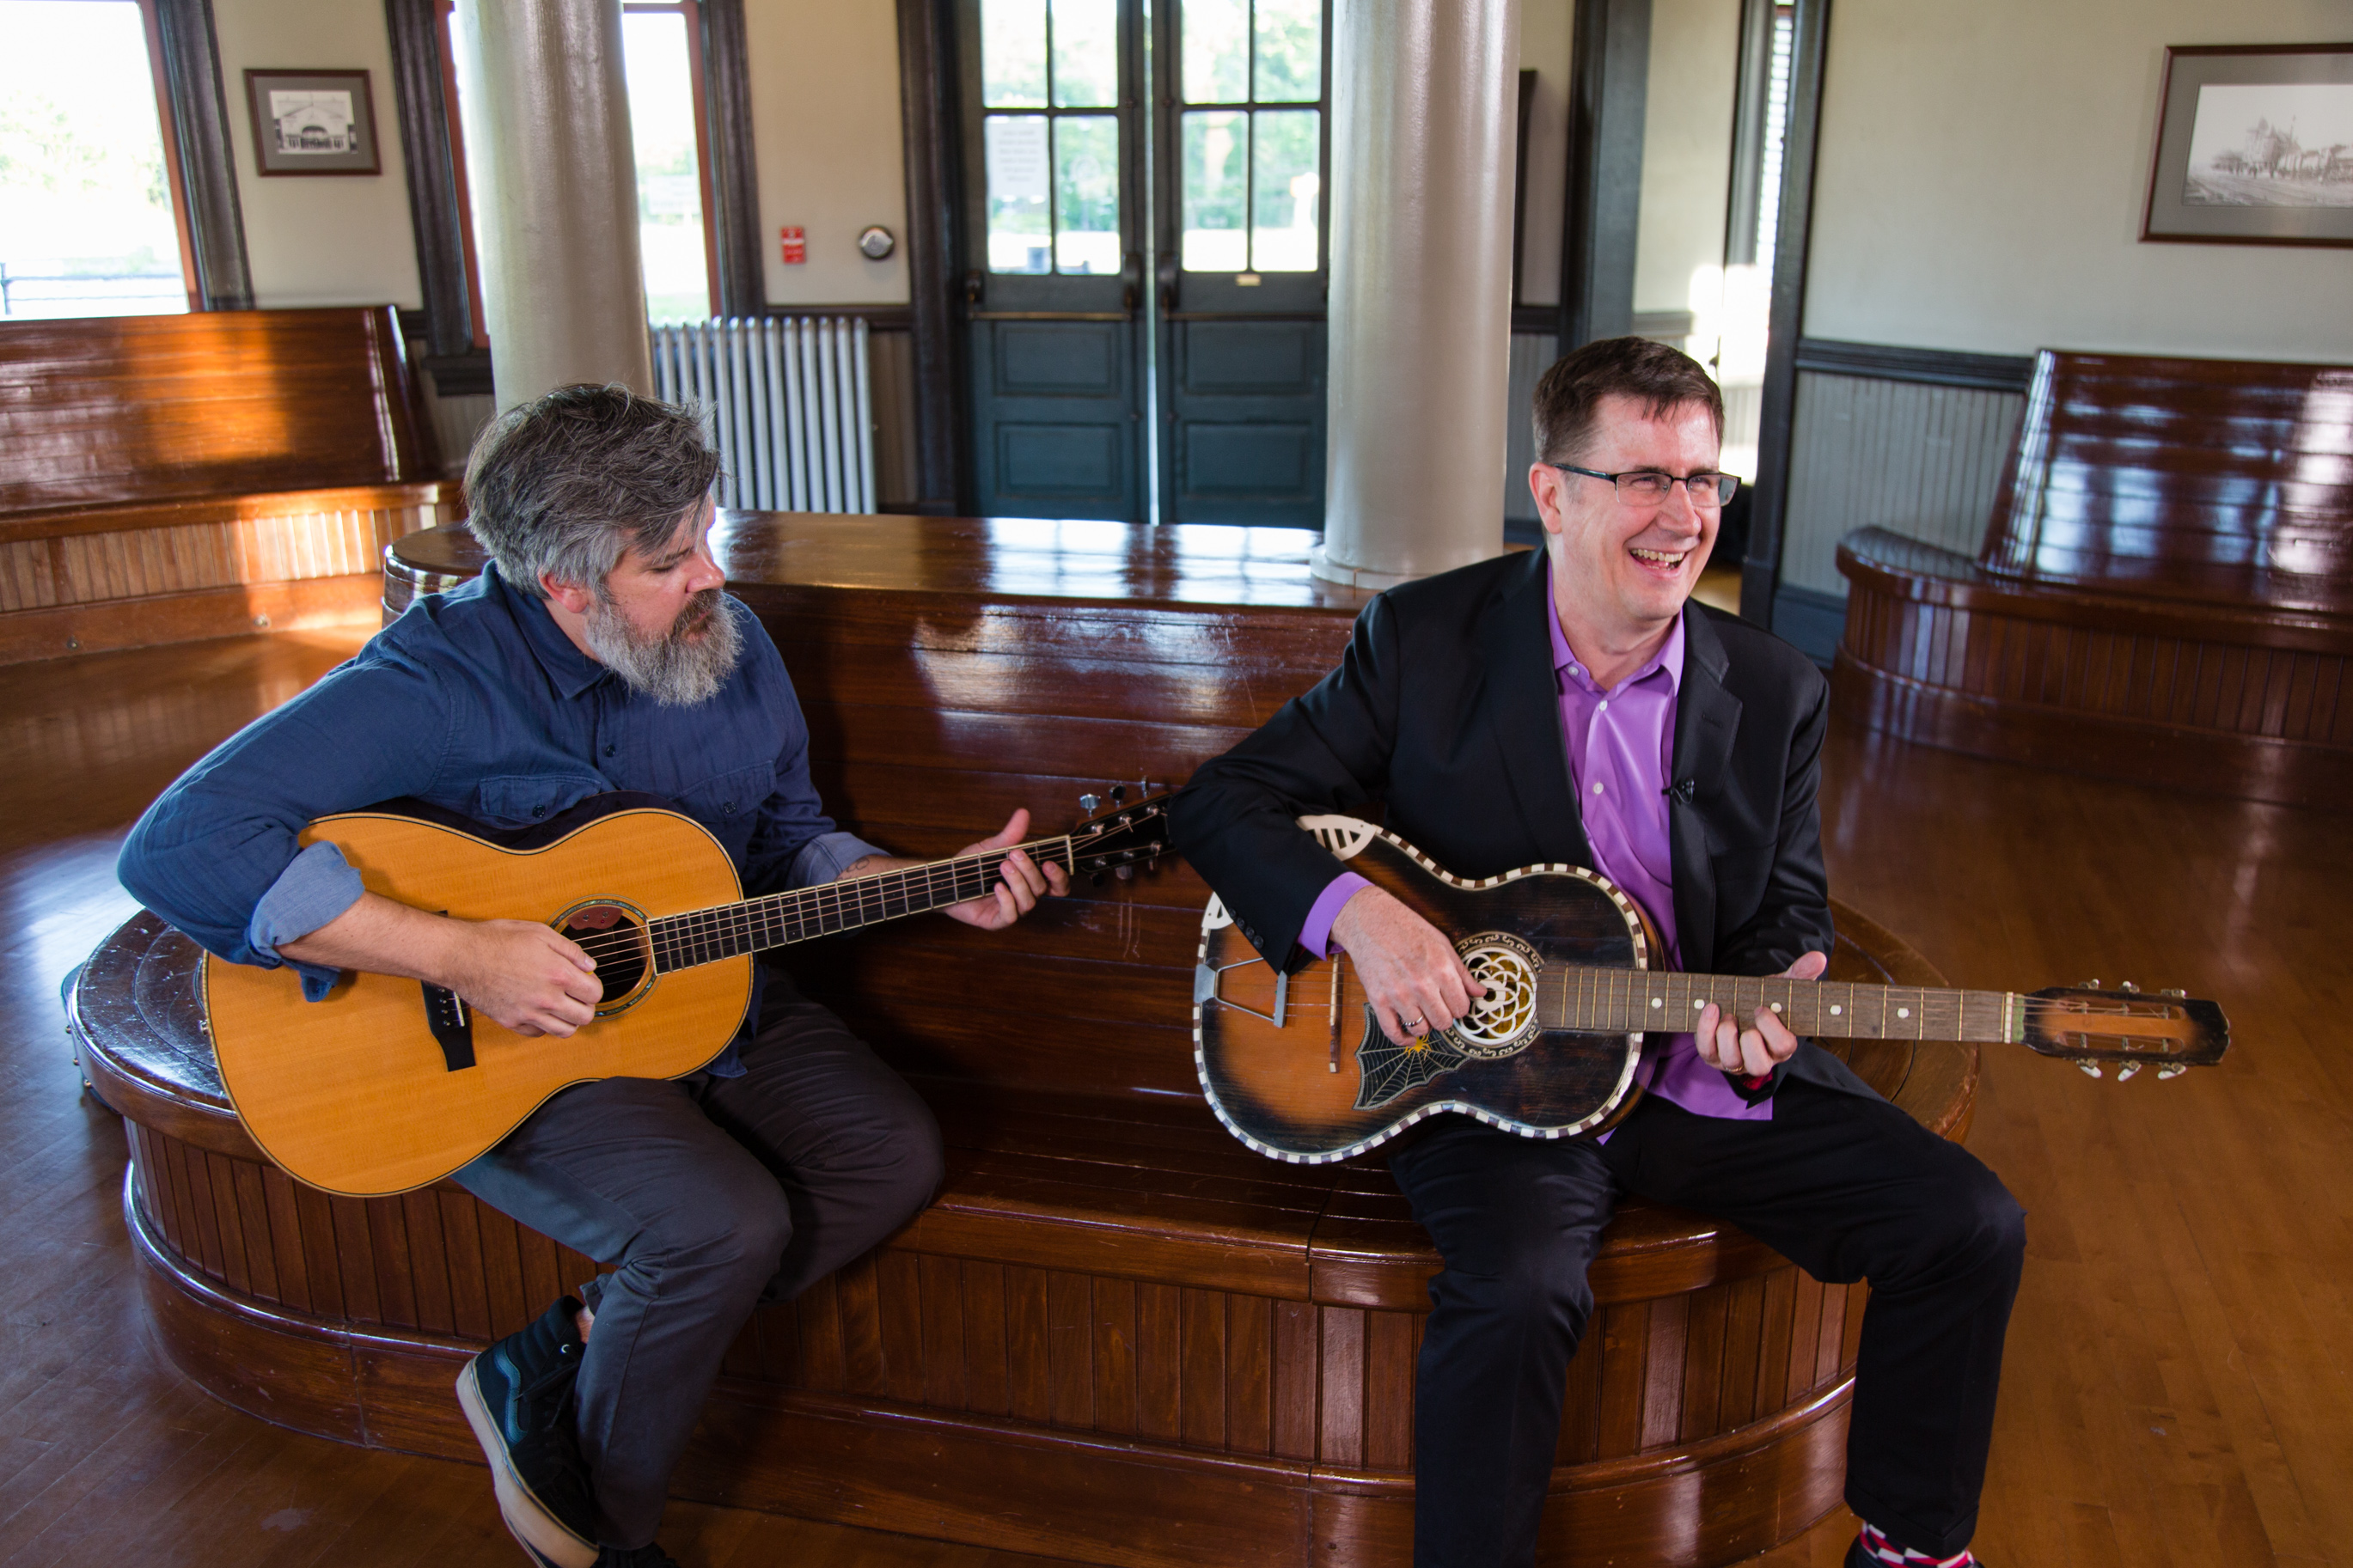 the Mountain Goats, Matt Douglas and John Darnielle, perform at the Hamlet Depot & Museum | Photo by Sandra Davidson